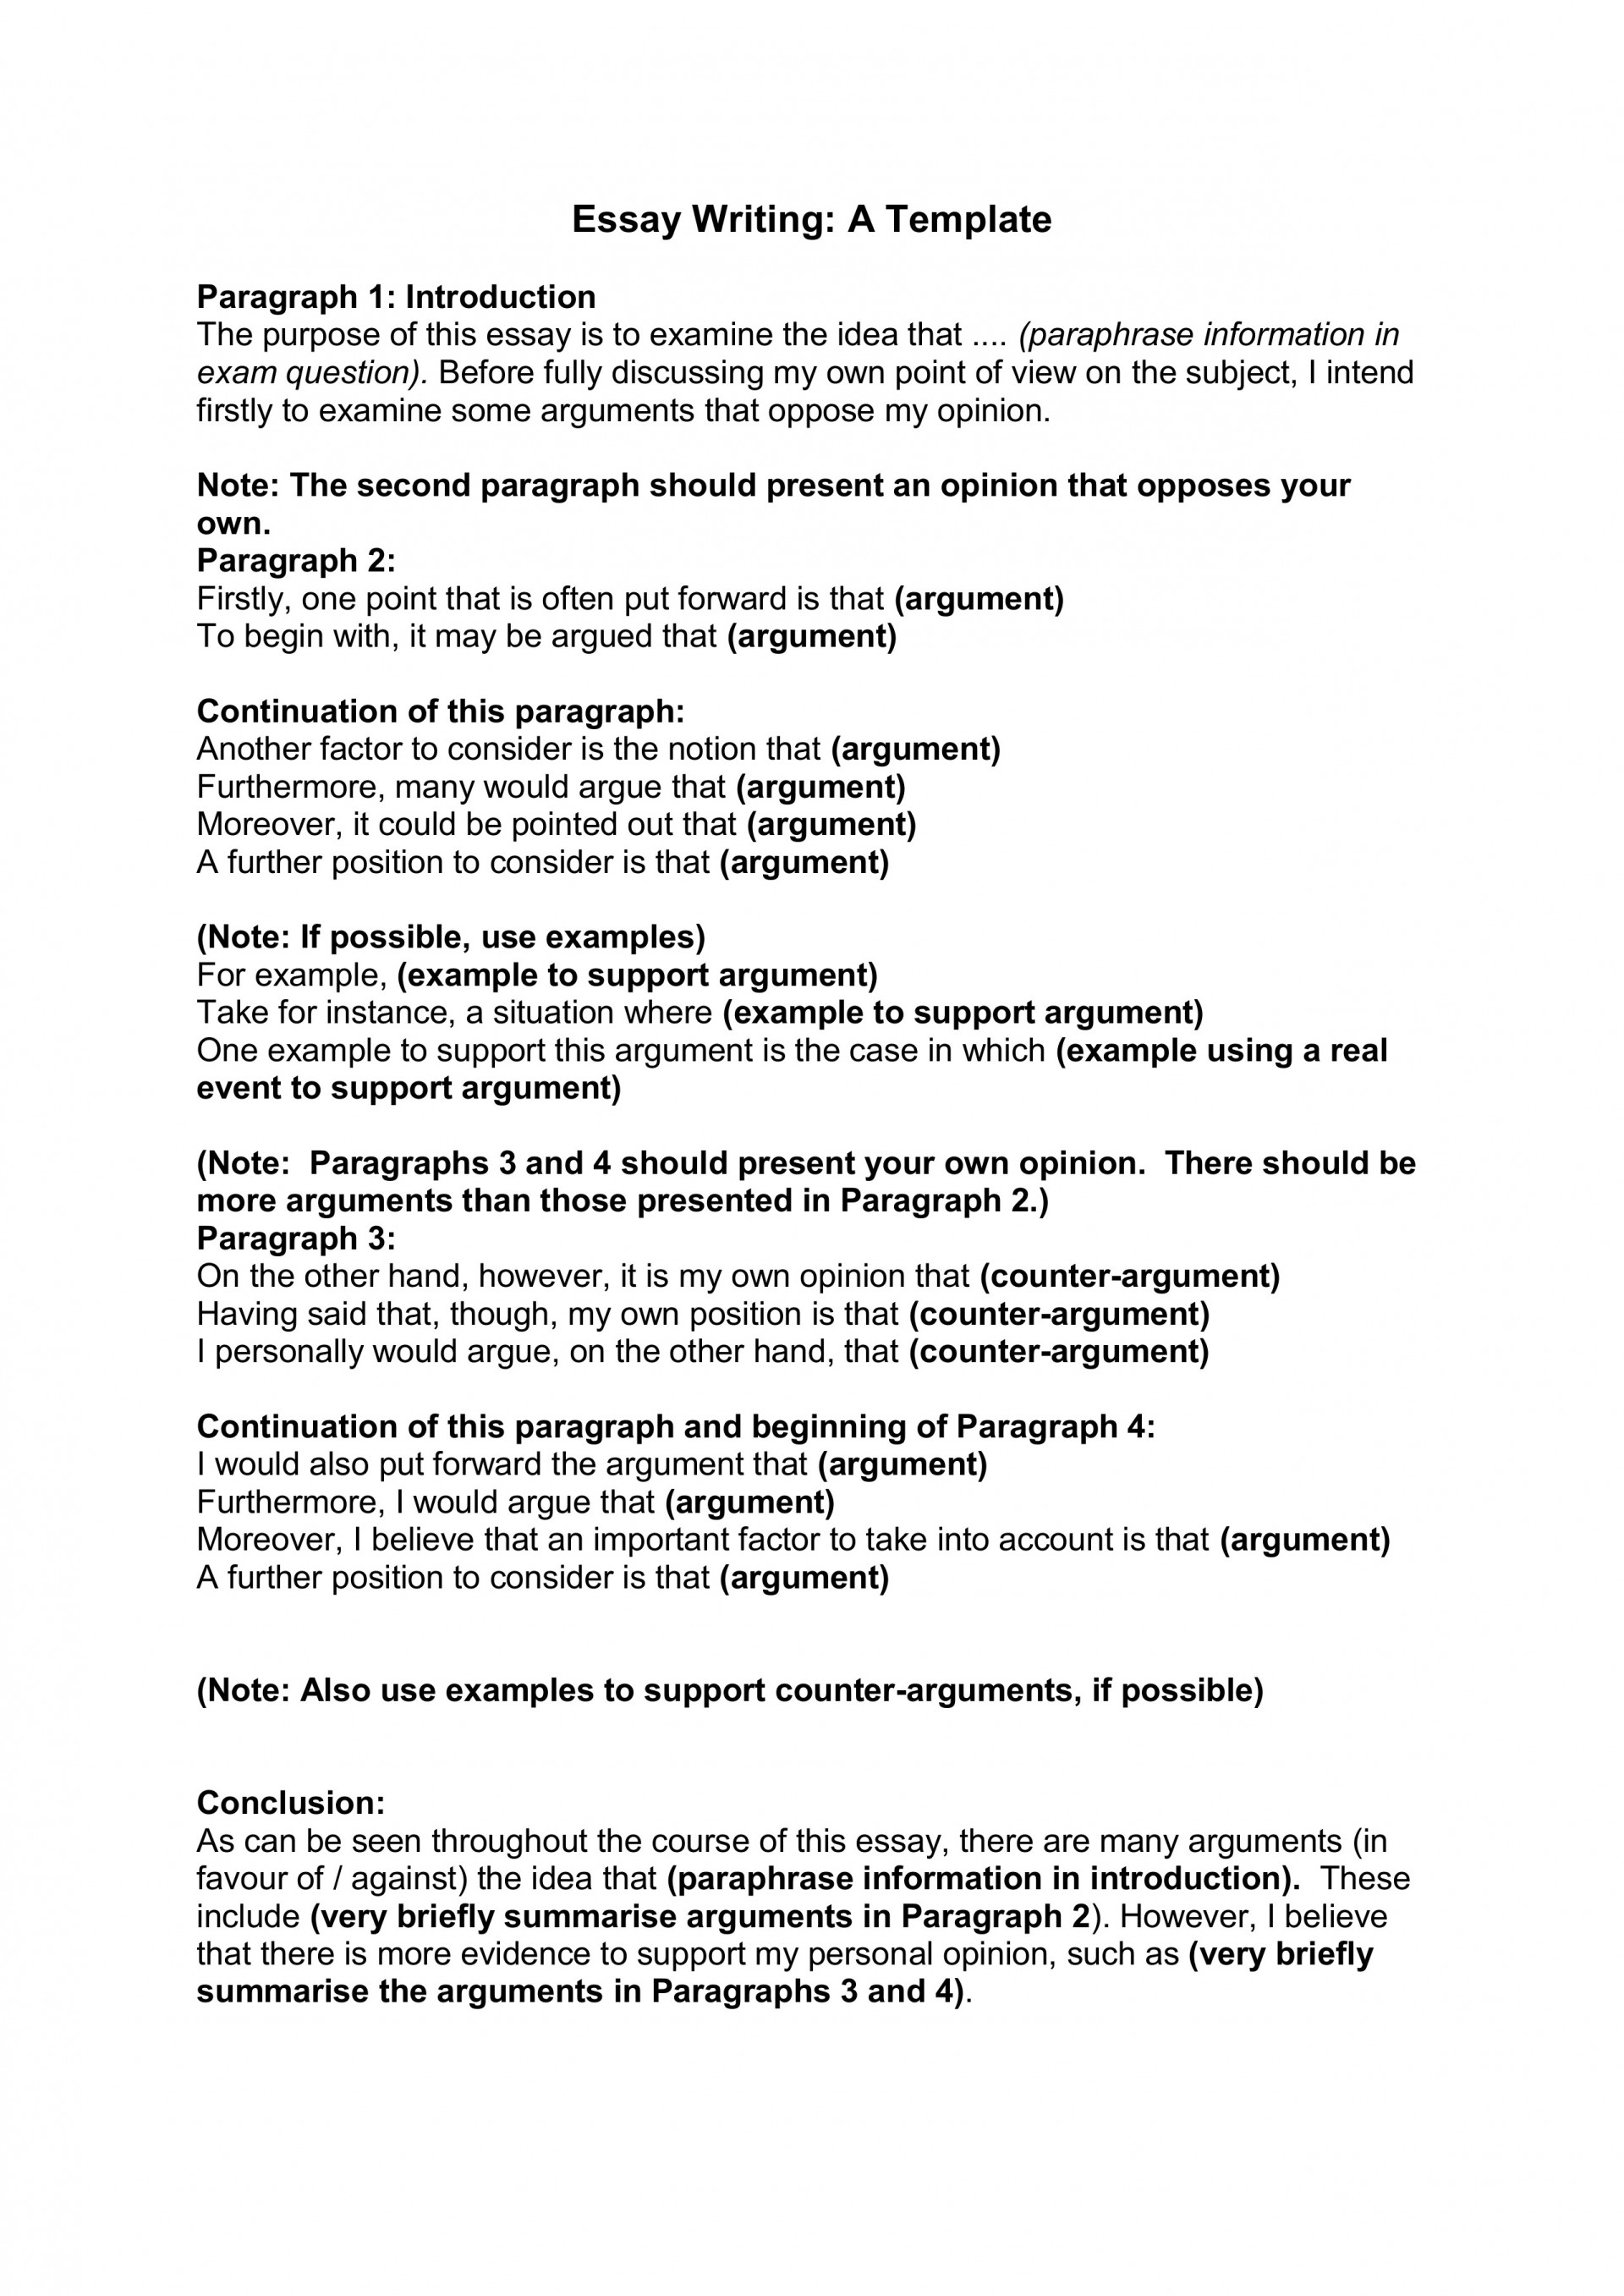 017 Essay Writing Template For Part How To Start Cause And Effect Awful A Examples Write Step By Powerpoint Pdf 1920